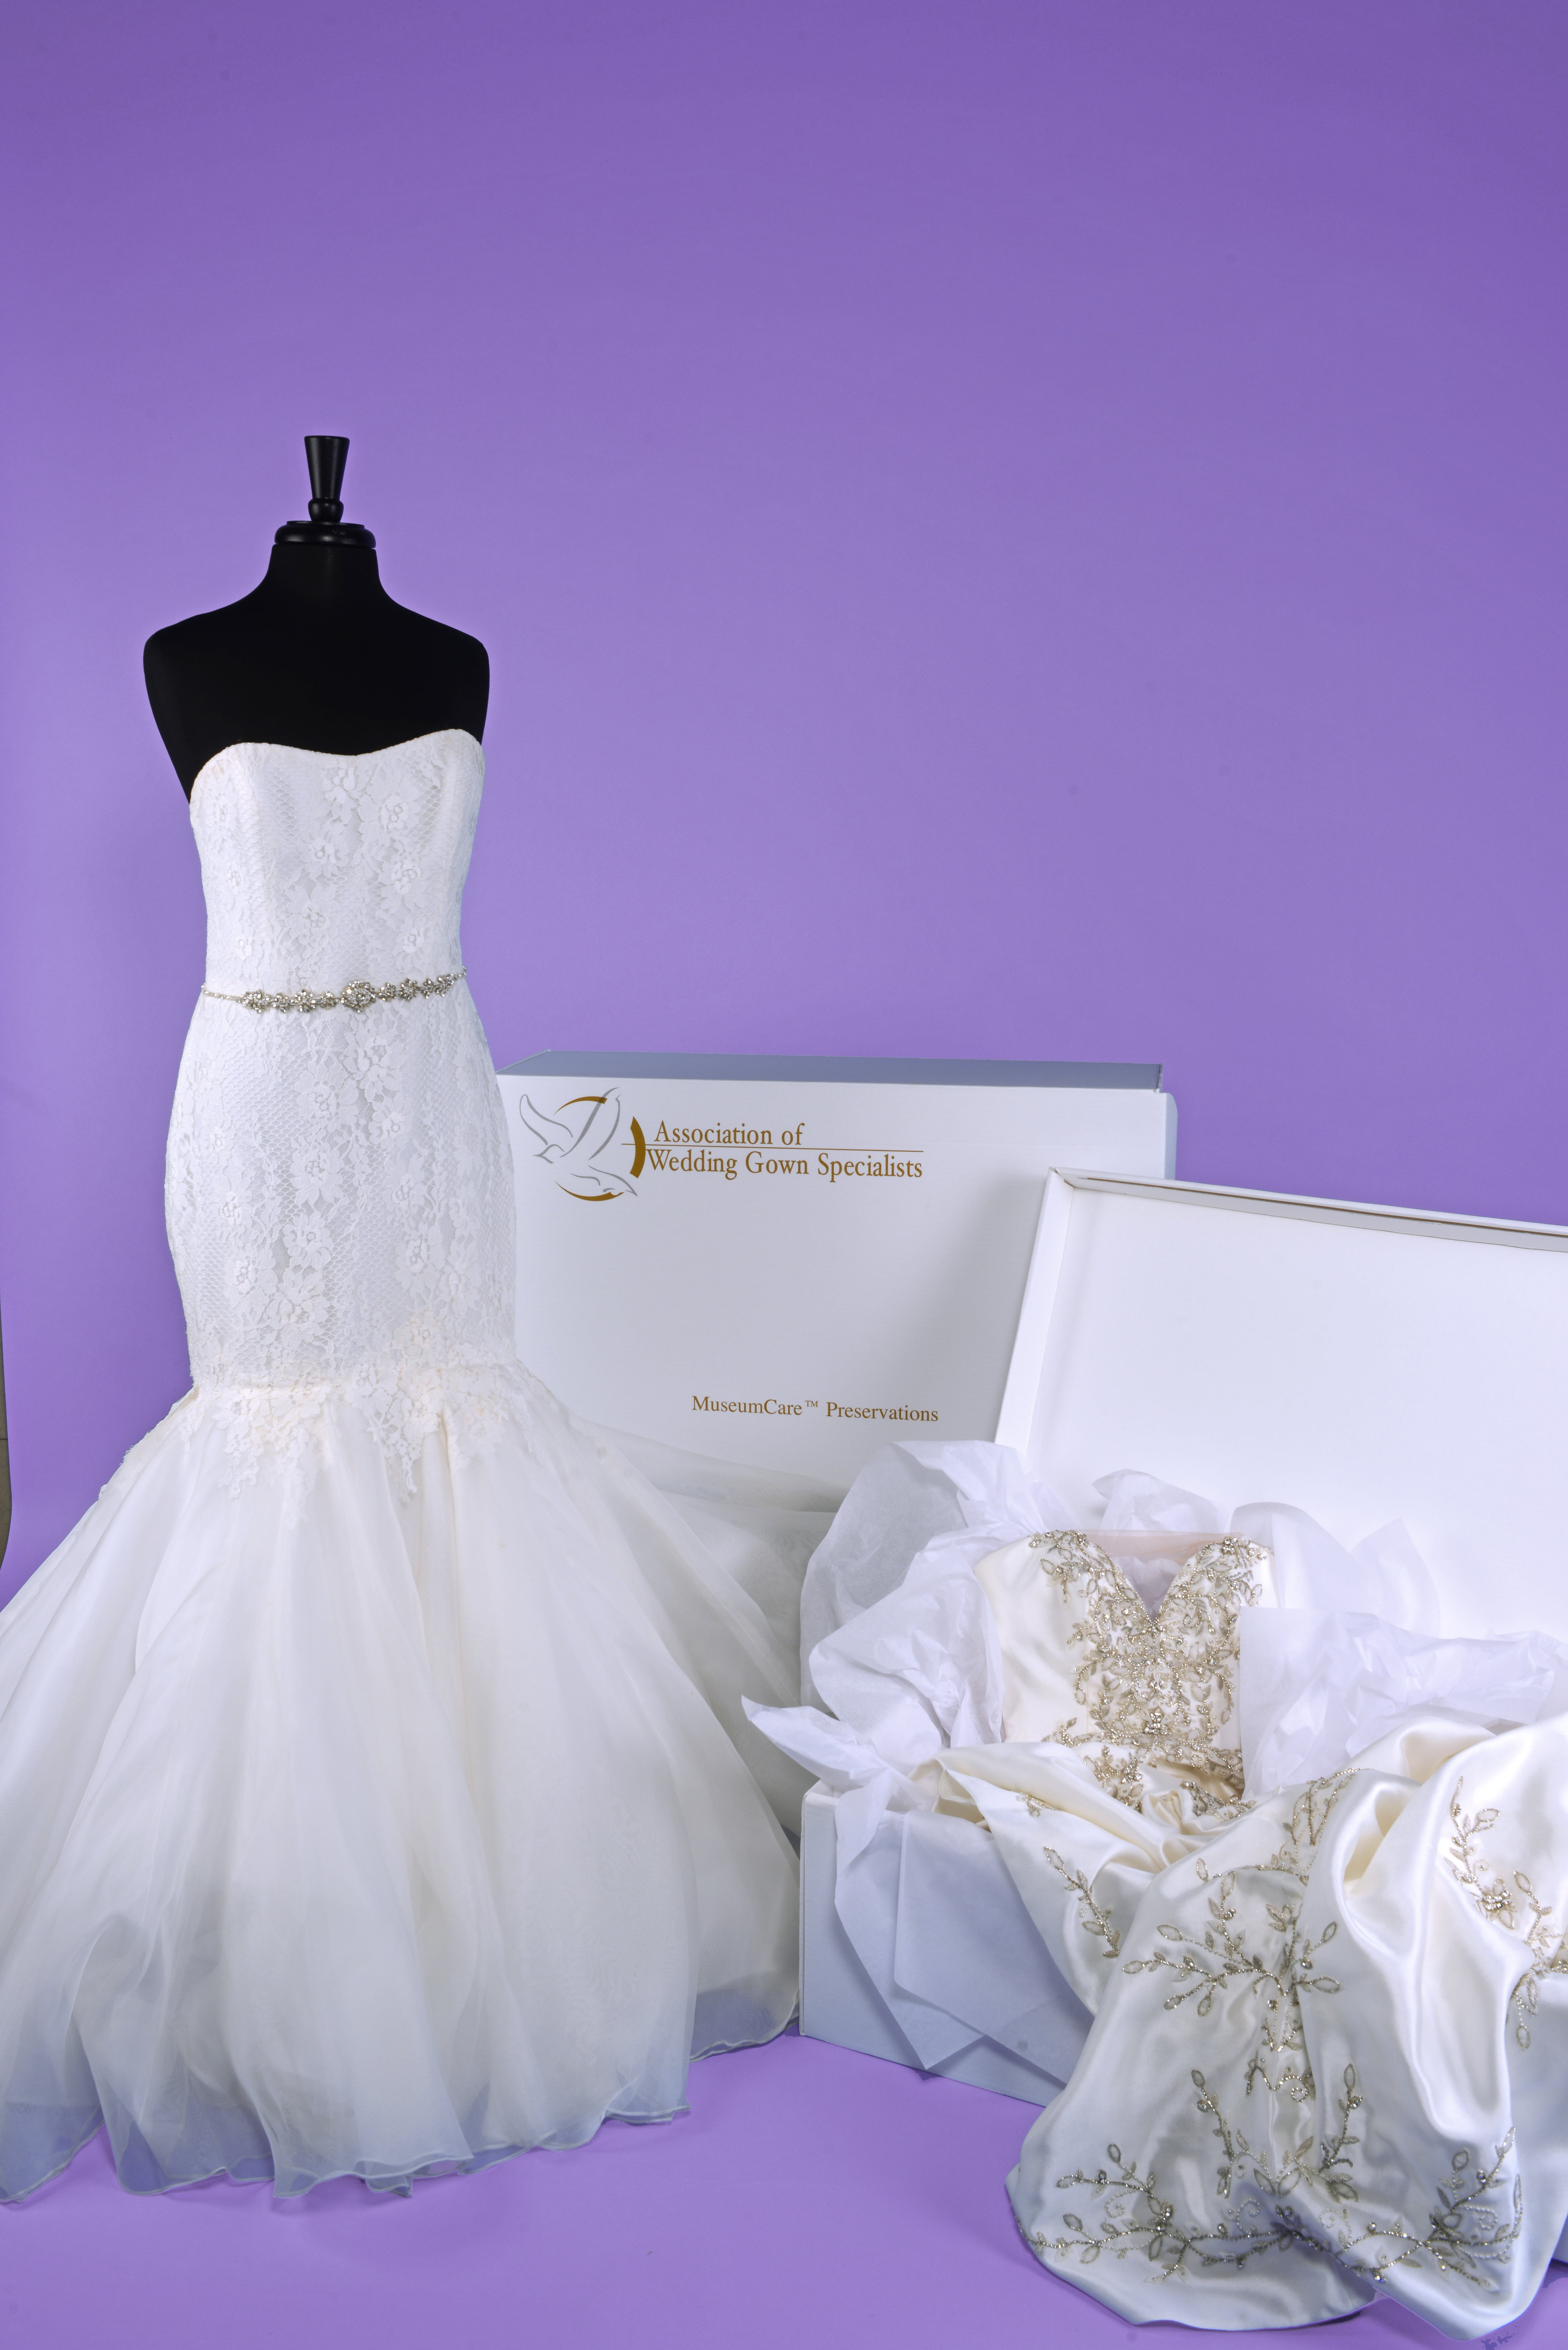 Wedding gown specialists preservations